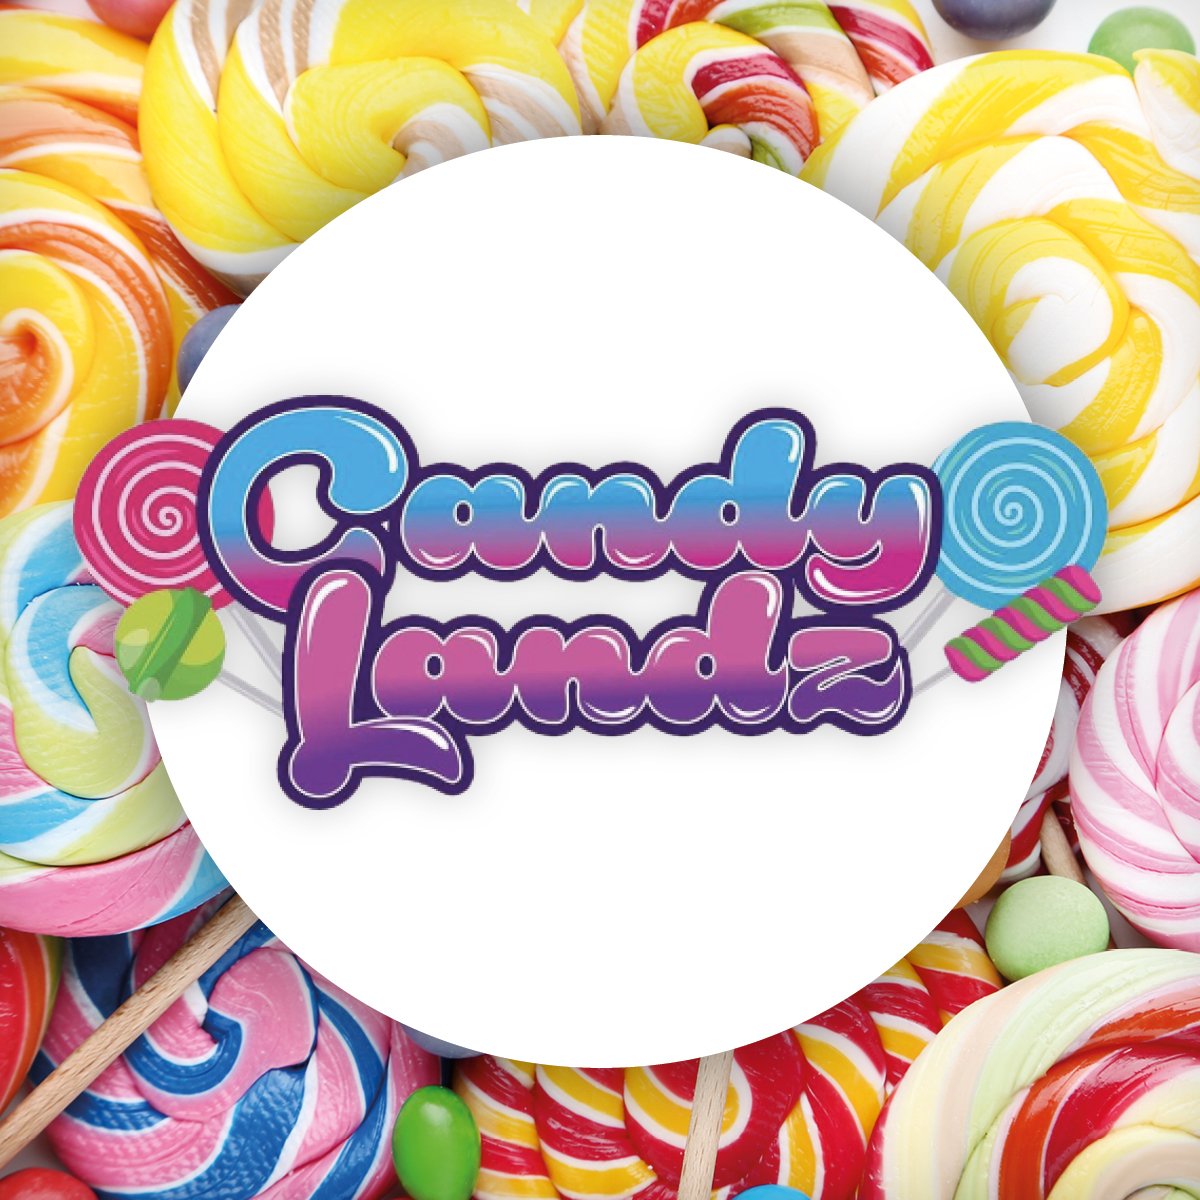 Candy Landz New Store Is Now Open At Gateway!